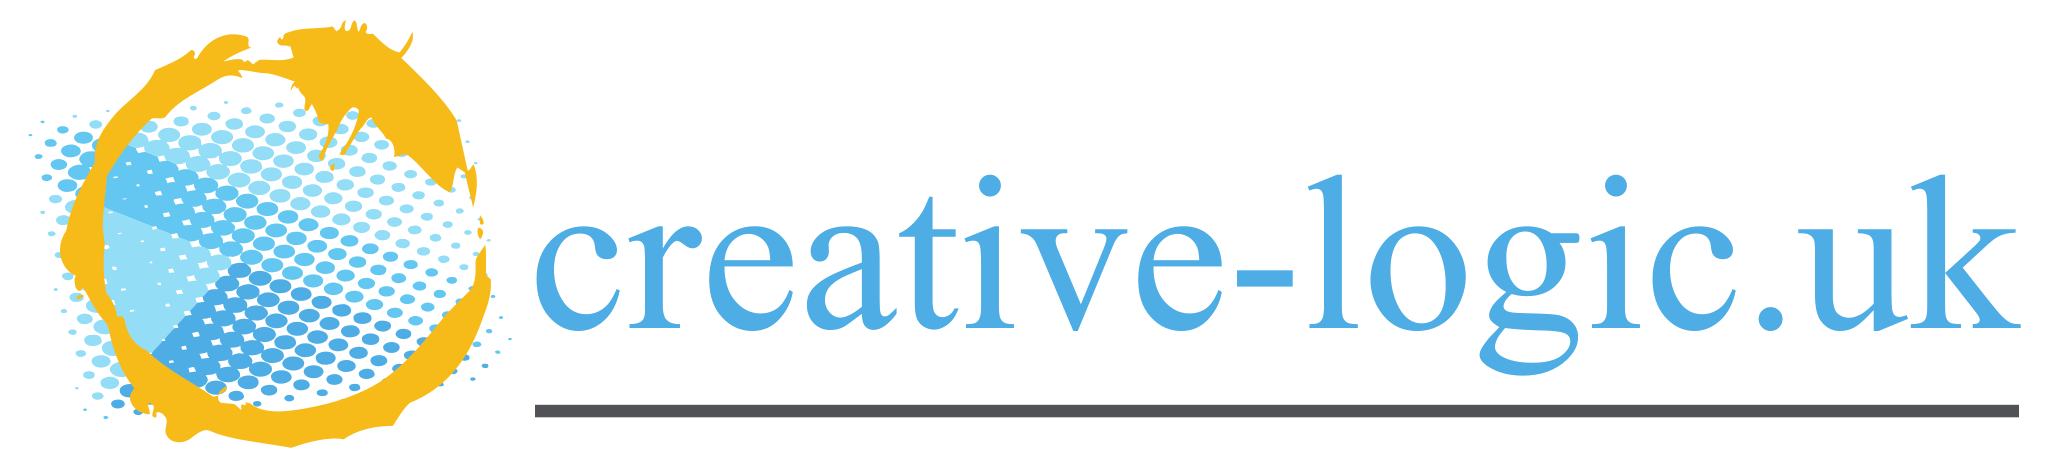 creative-logic.uk logo